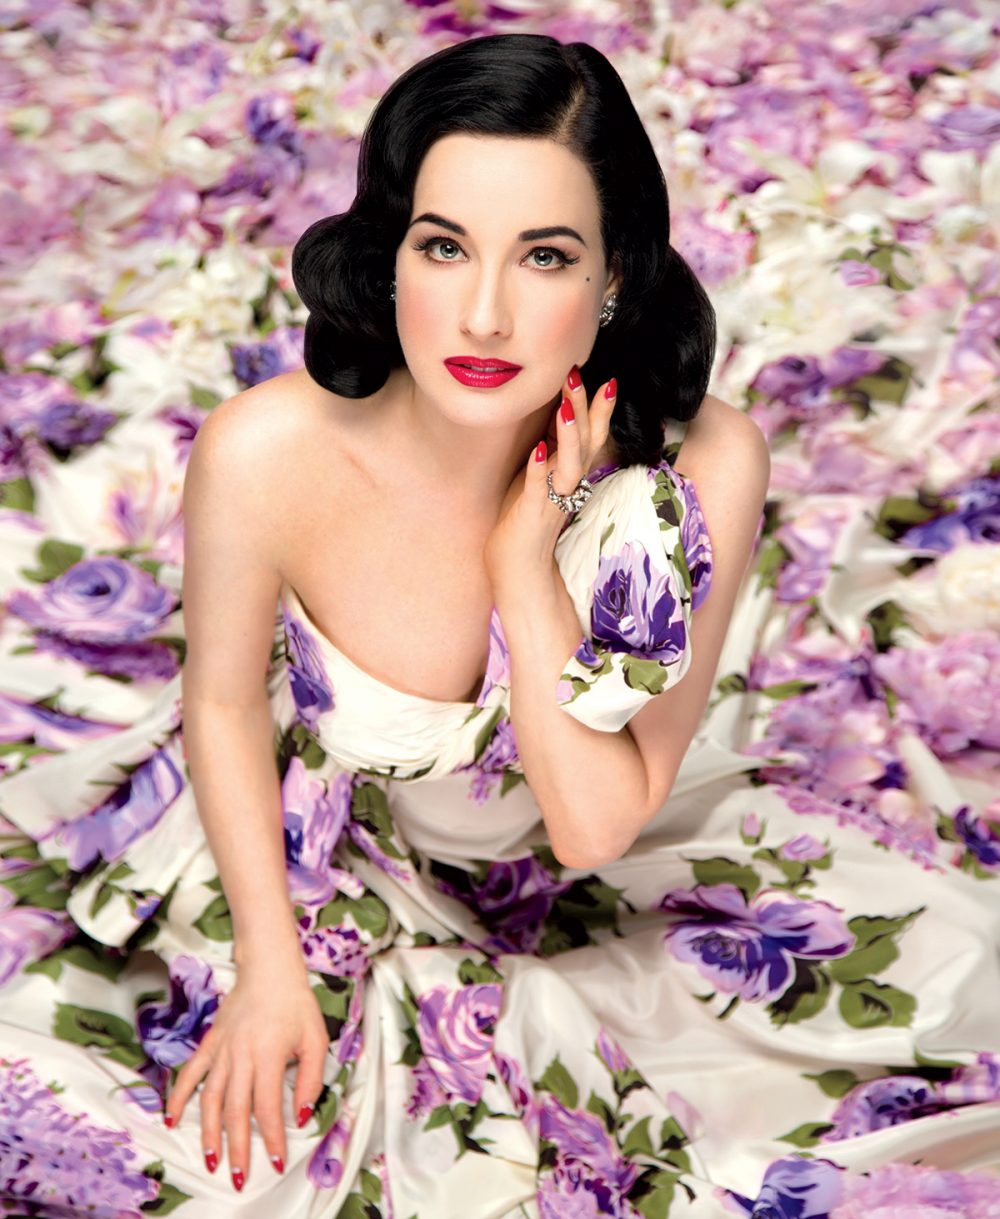 Dita Von Teese. Queen of burlesque 29